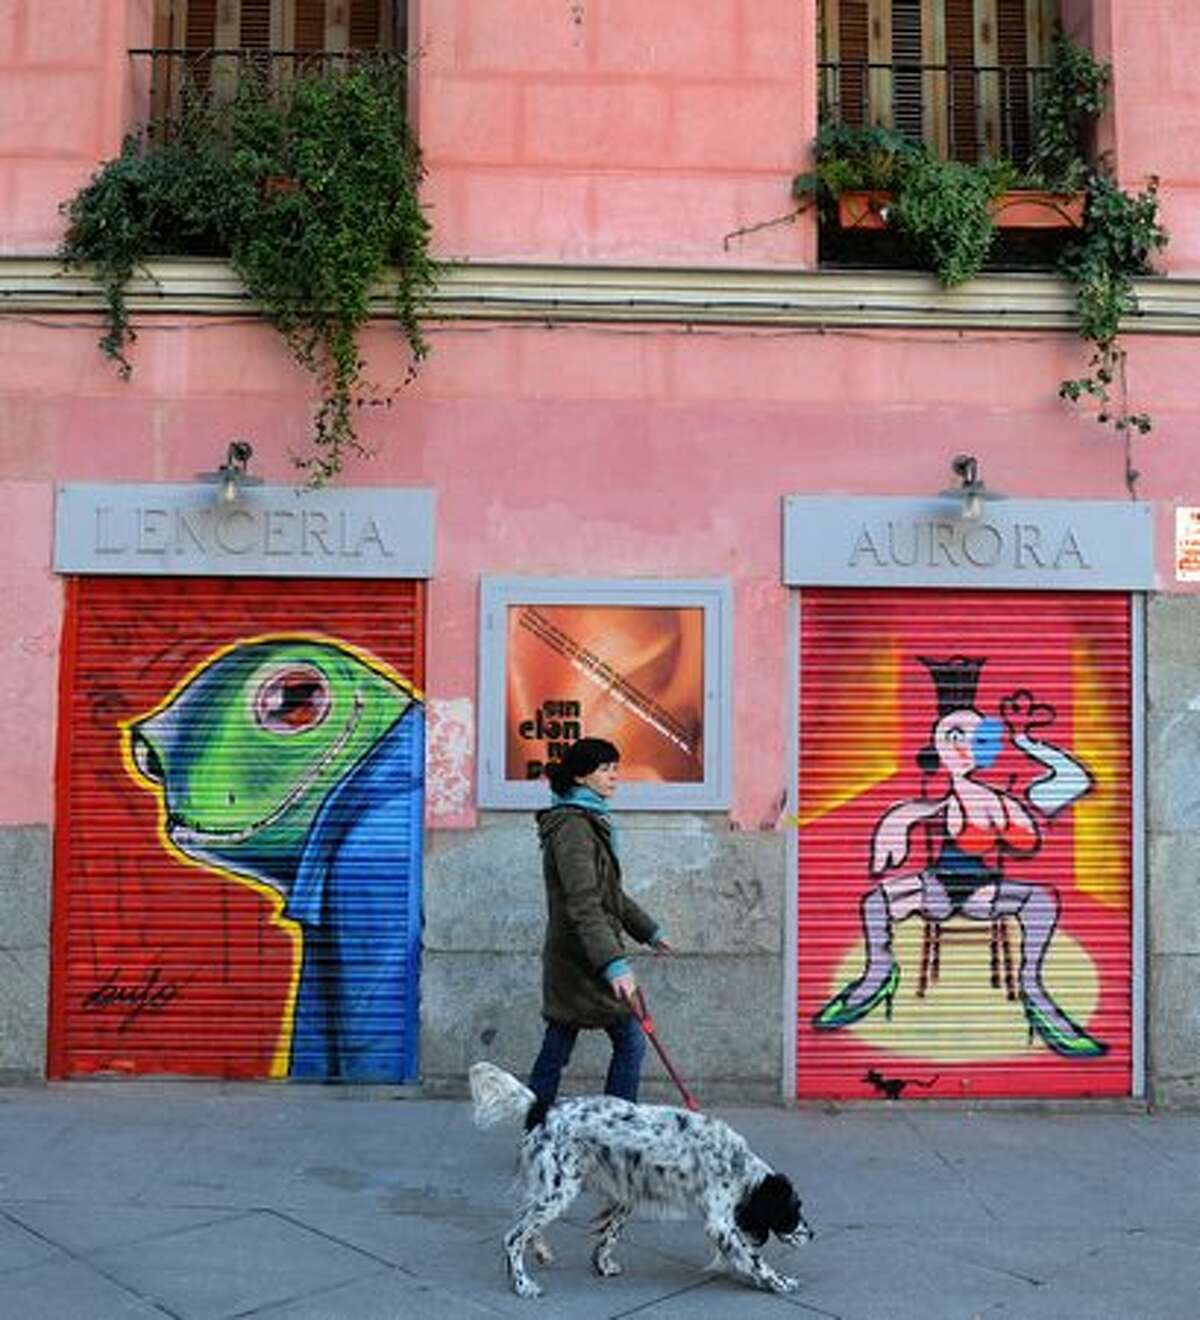 A woman walks her dog past graffiti on shopkeepers' shutters on February 8, 2011 in Madrid. The Spanish capital has invited graffiti artists to paint the steel shutters protecting their stores at night in the hope this will stop them from being defaced by crude scribblings made on the run. Over 130 graffiti artists from across Europe, including Bristol and Milan, decorated 140 shutters on February 6, 2011 in Madrid's central Malasana neighborhood, which has long been the heart of the city's counter-cultural scene.